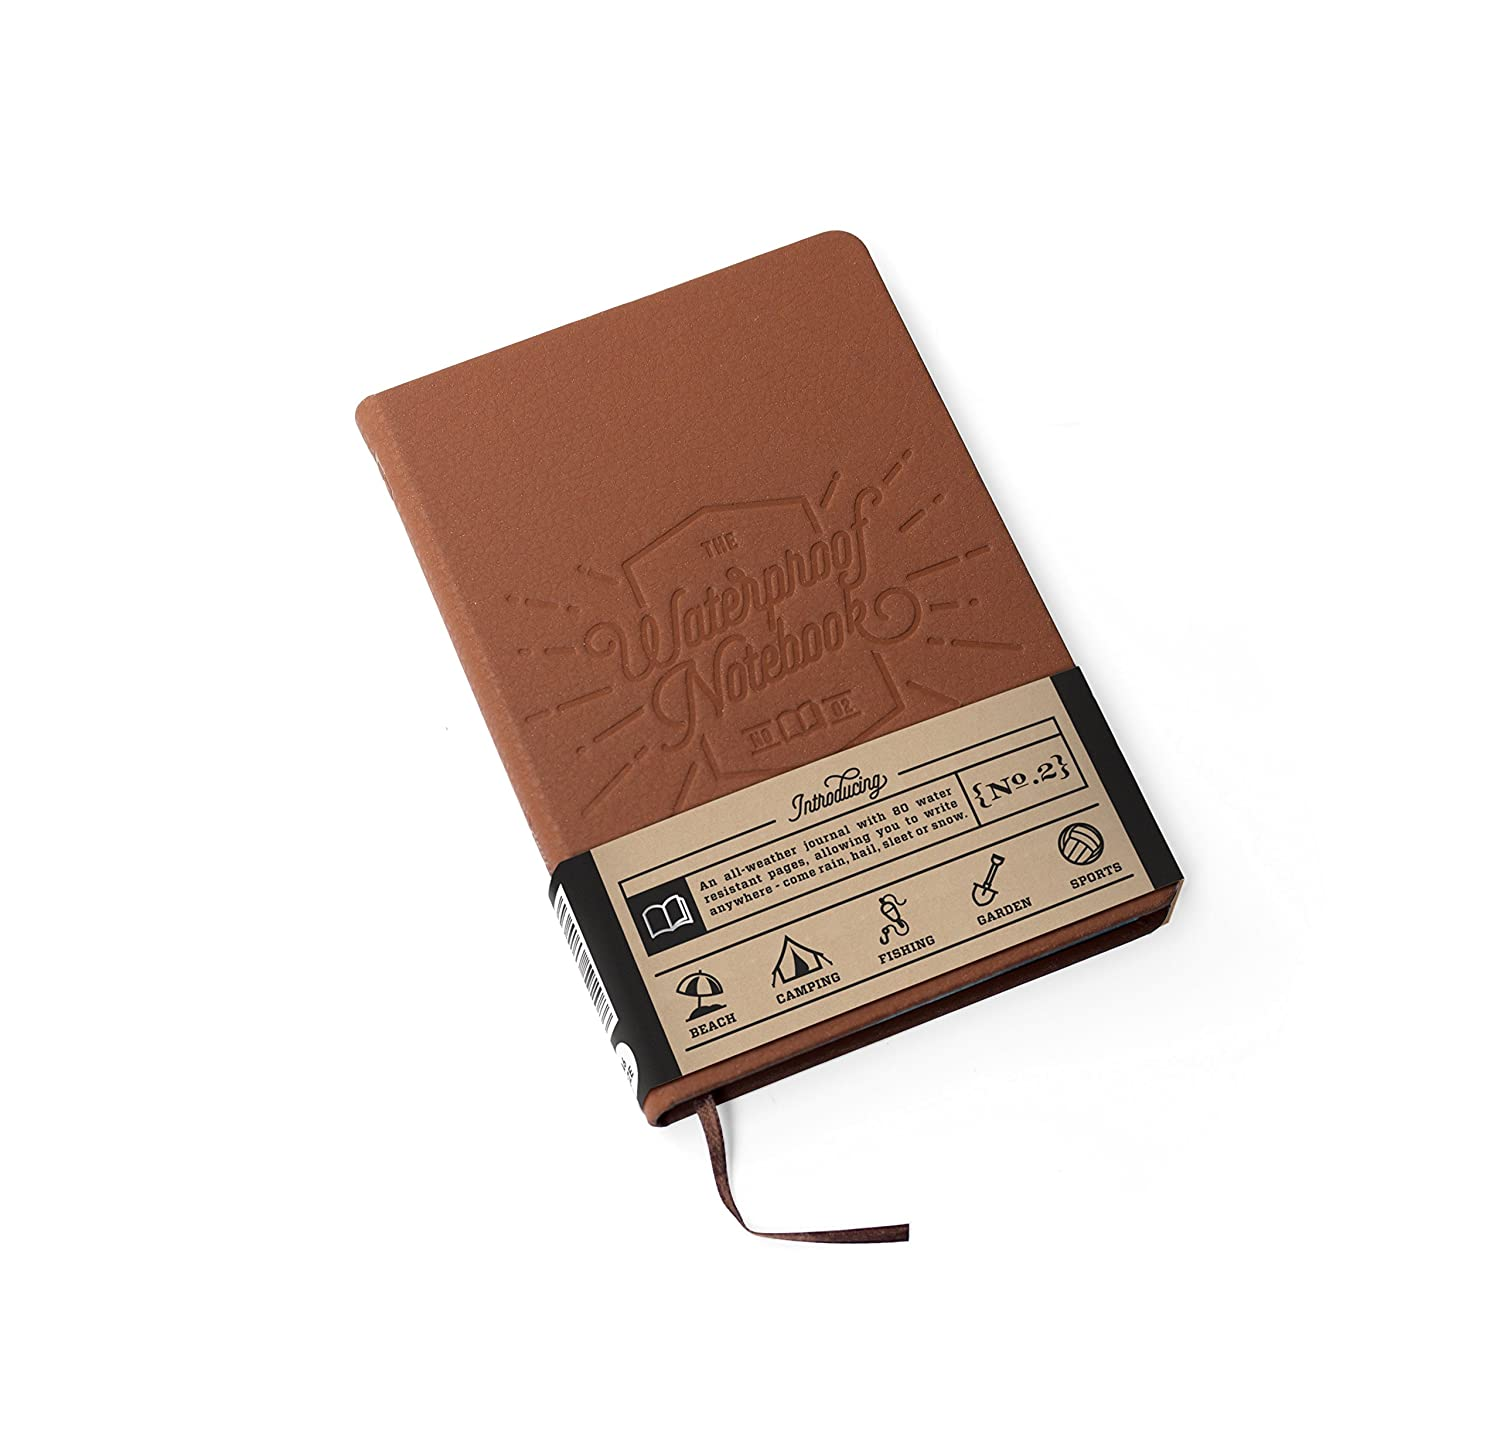 Luckies of London Lukwat - Libreta 100% impermeable de viaje